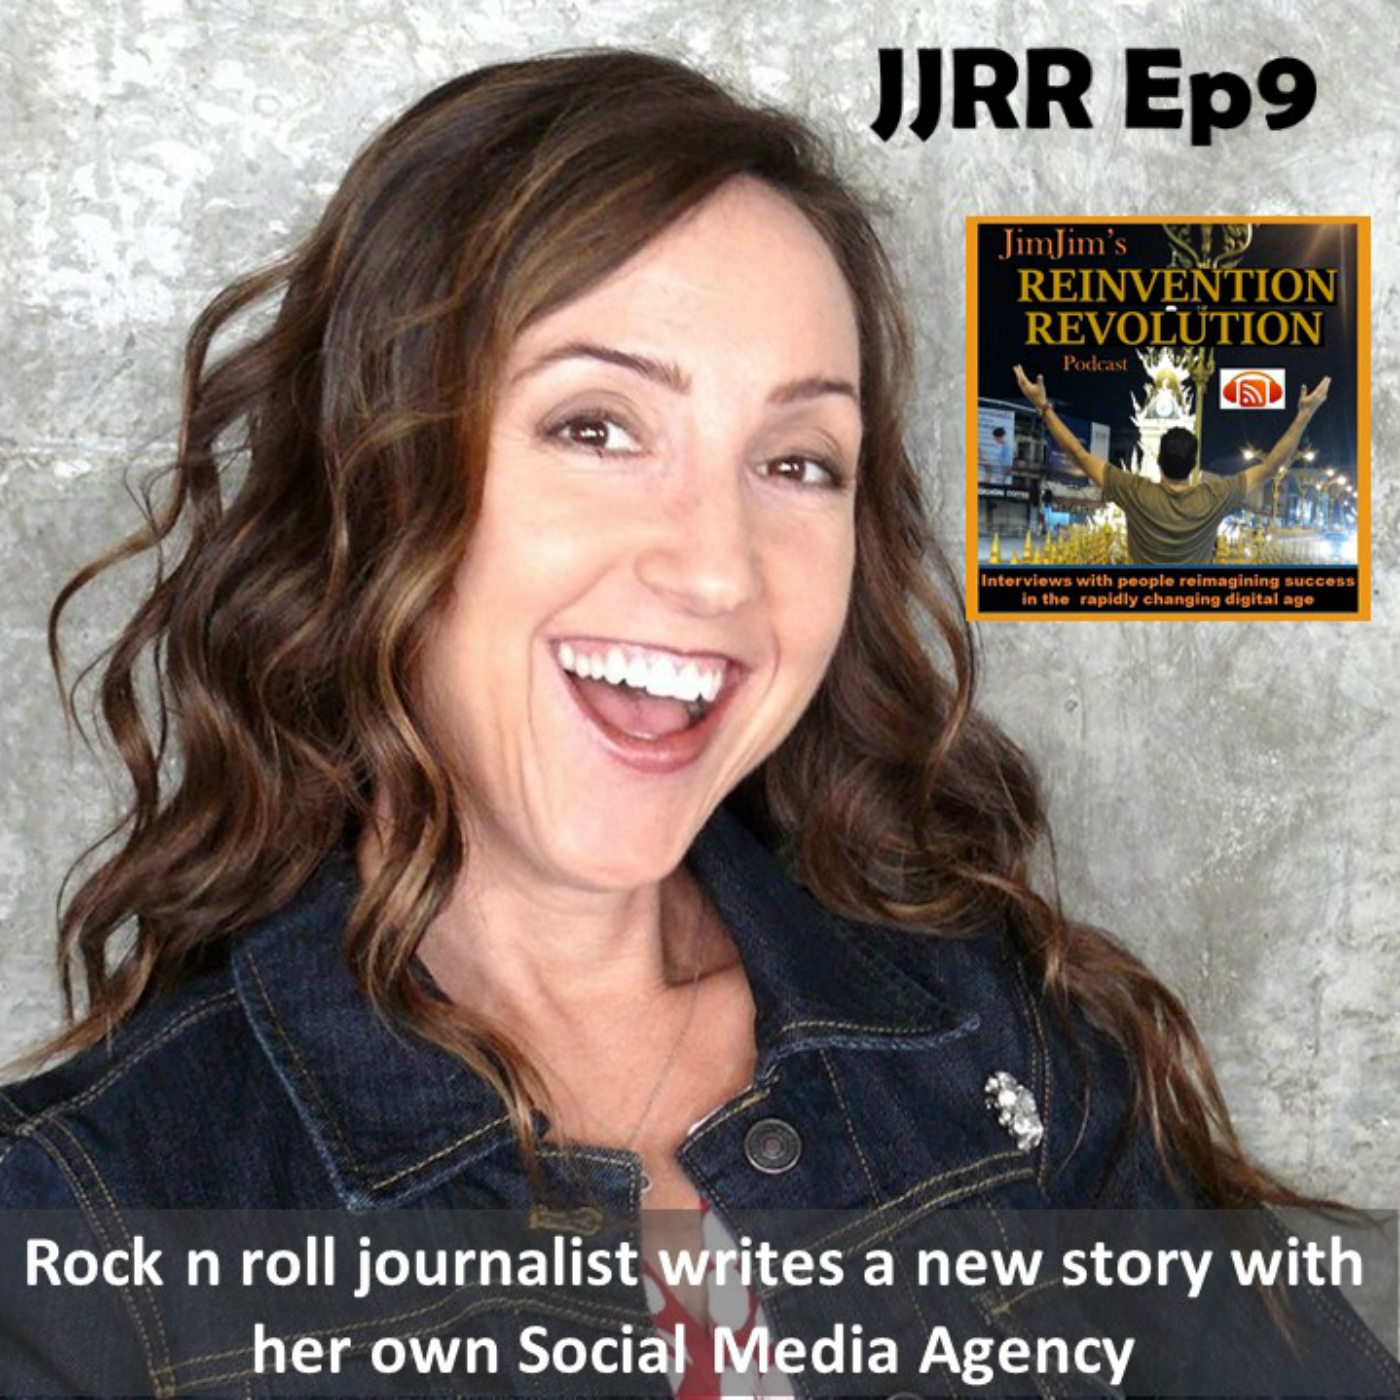 JJRR Ep9 Rock n roll journalist writes  a new story with her own social media agency